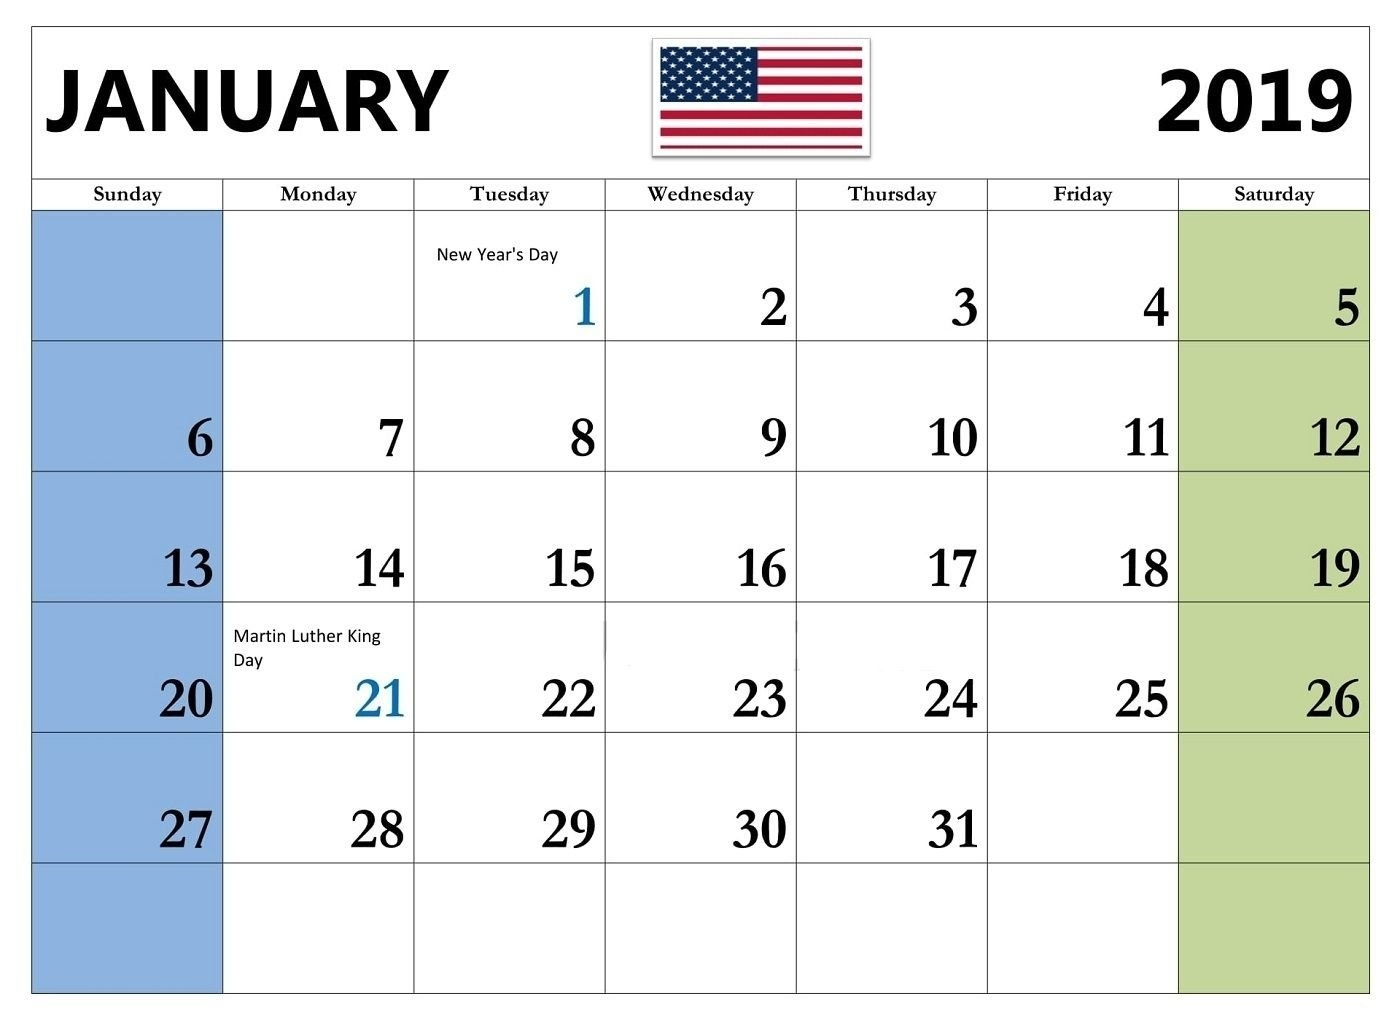 January 2019 Usa Holiday Calendar #january2019 #january2019Calendar Calendar 2019 Usa